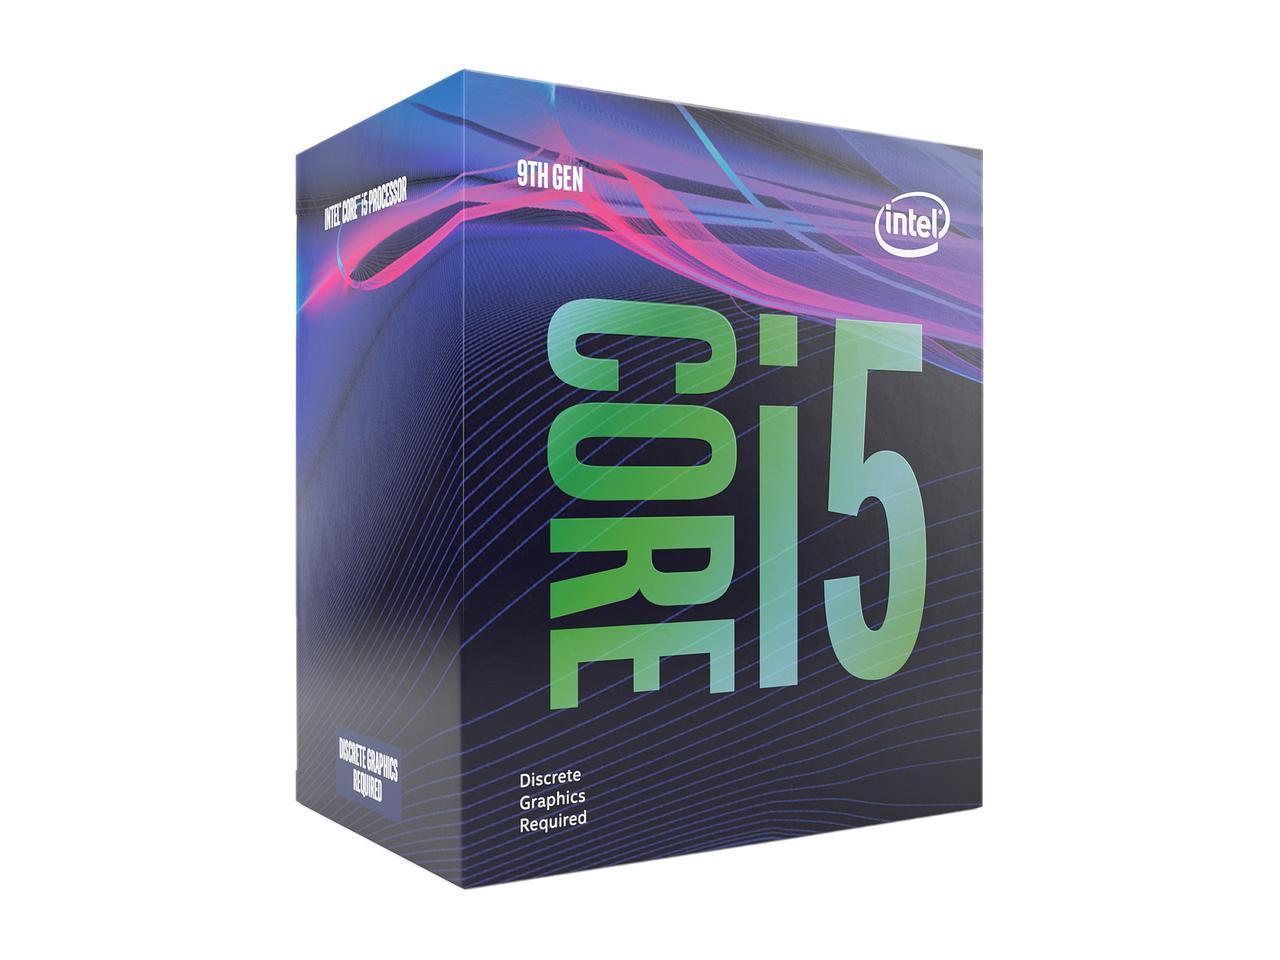 Процесор Intel Coffee Lake Core i5-9400F 2.9GHz (up to 4.10GHz ), 9MB, 65W LGA1151 (300 Series)-2